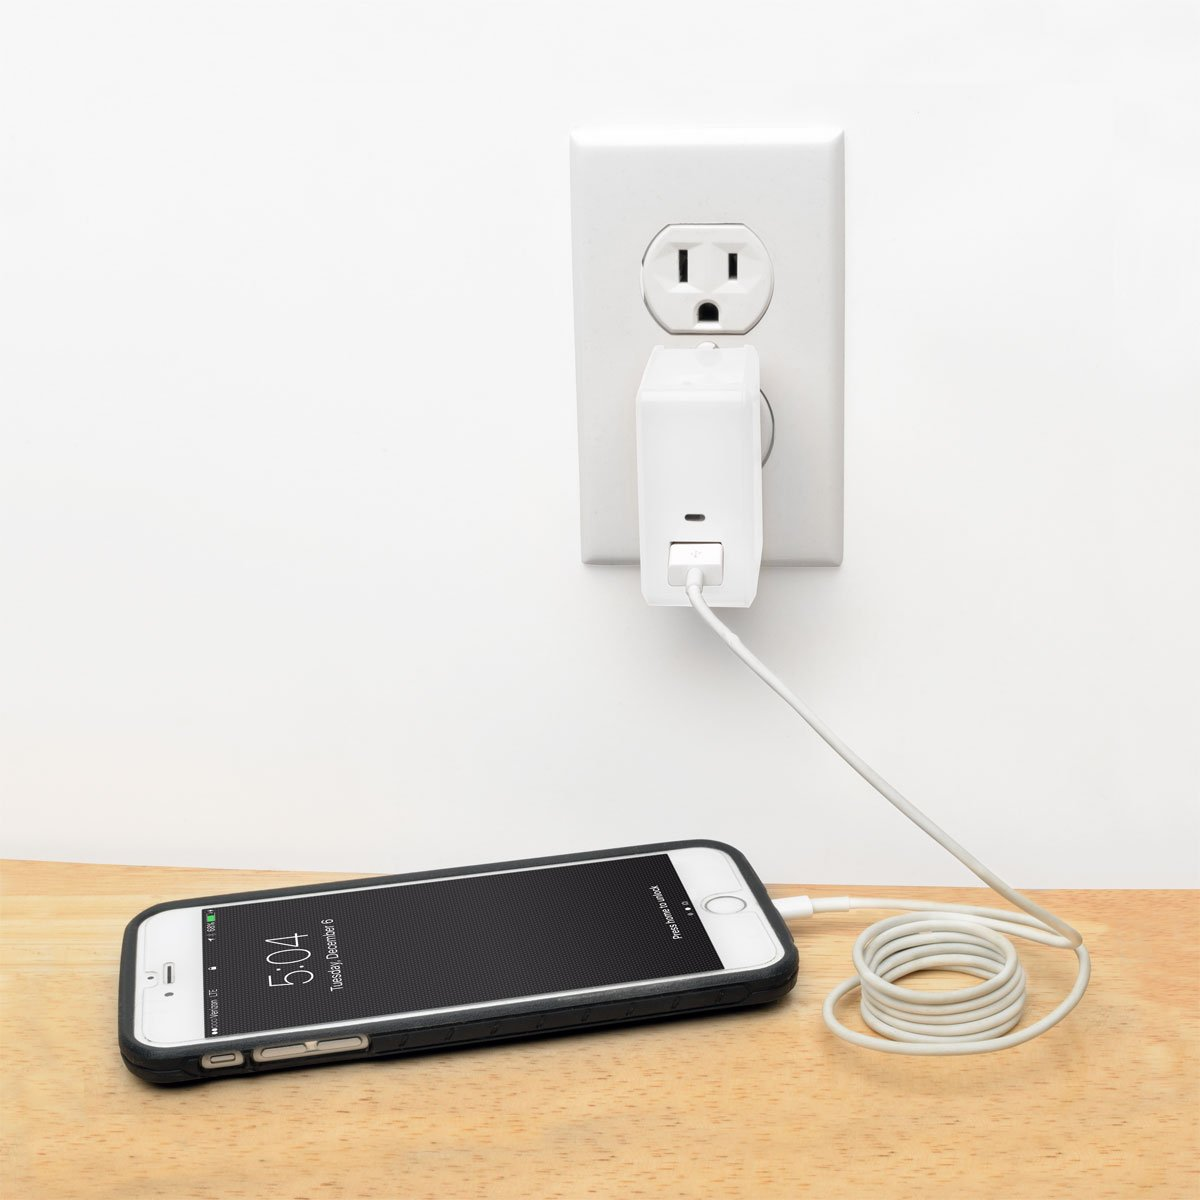 Tripp Lite 1-Port Quick Charge 3.0 USB Wall / Travel Charger w/ Autosensing for Tablet & Mobile Devices (U280-W01-QC3)